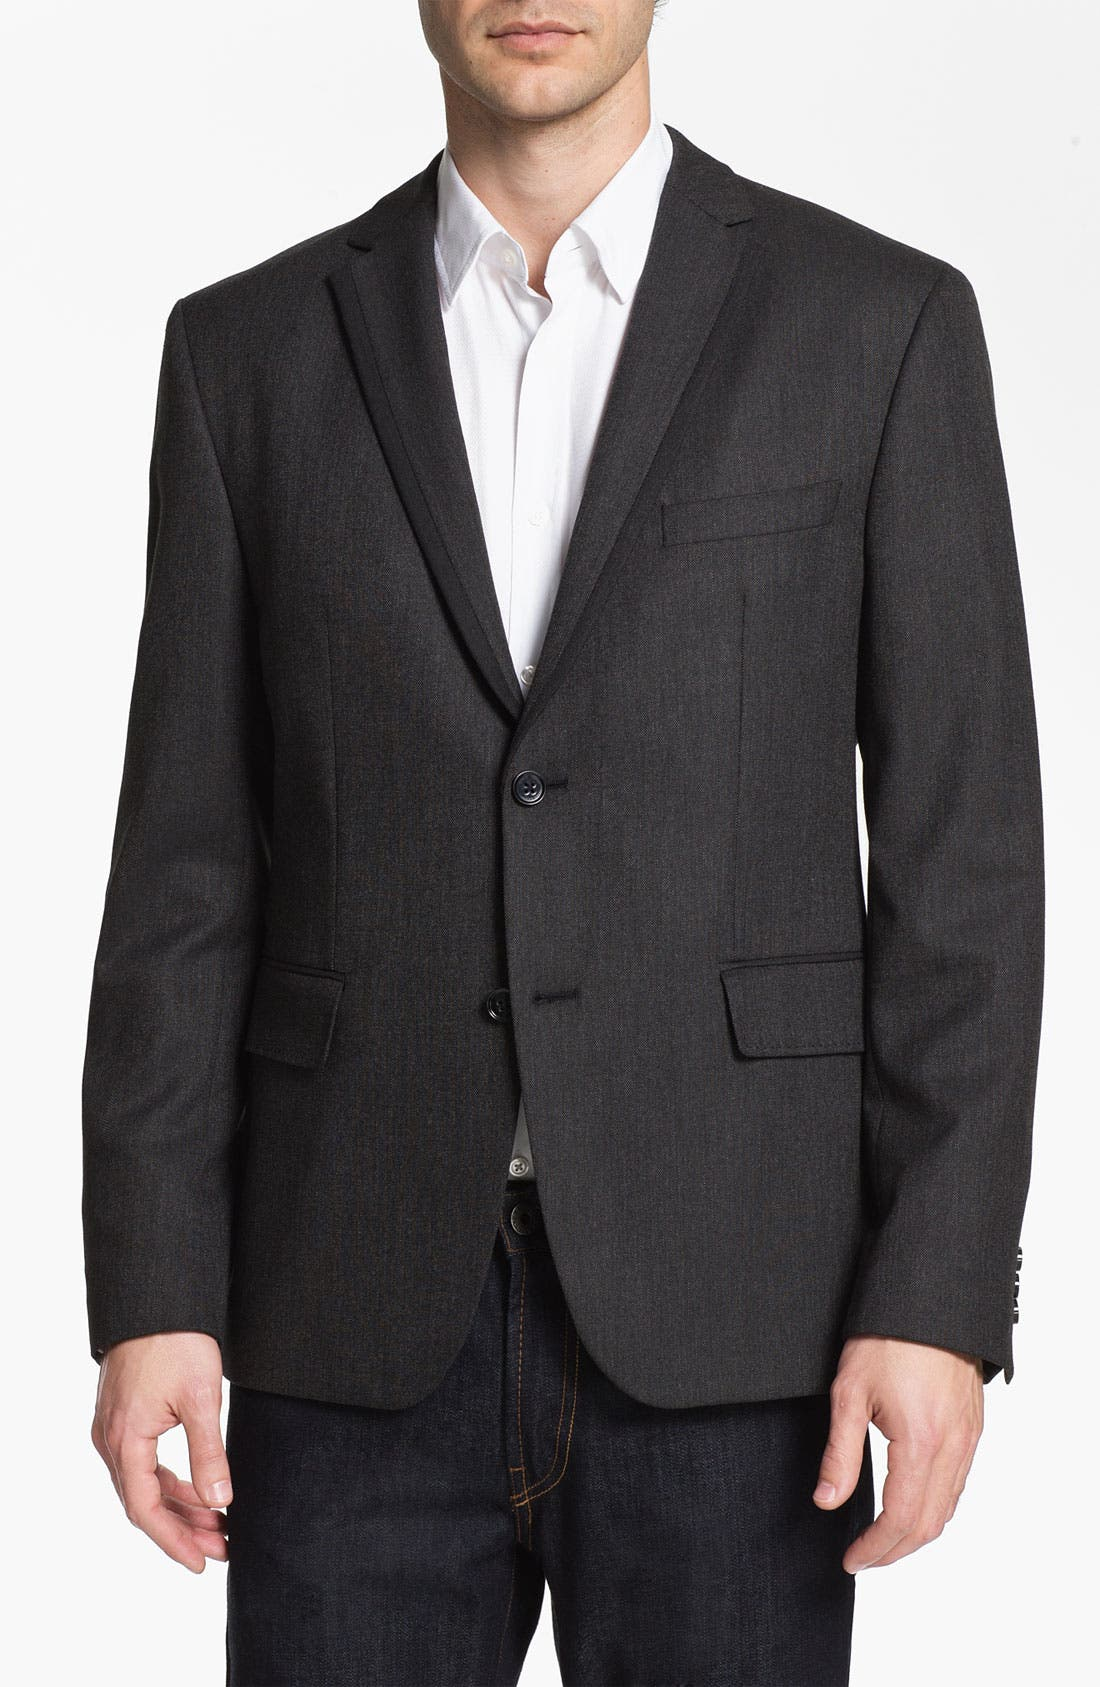 Alternate Image 1 Selected - BOSS Black 'Coastes' Trim Fit Blazer